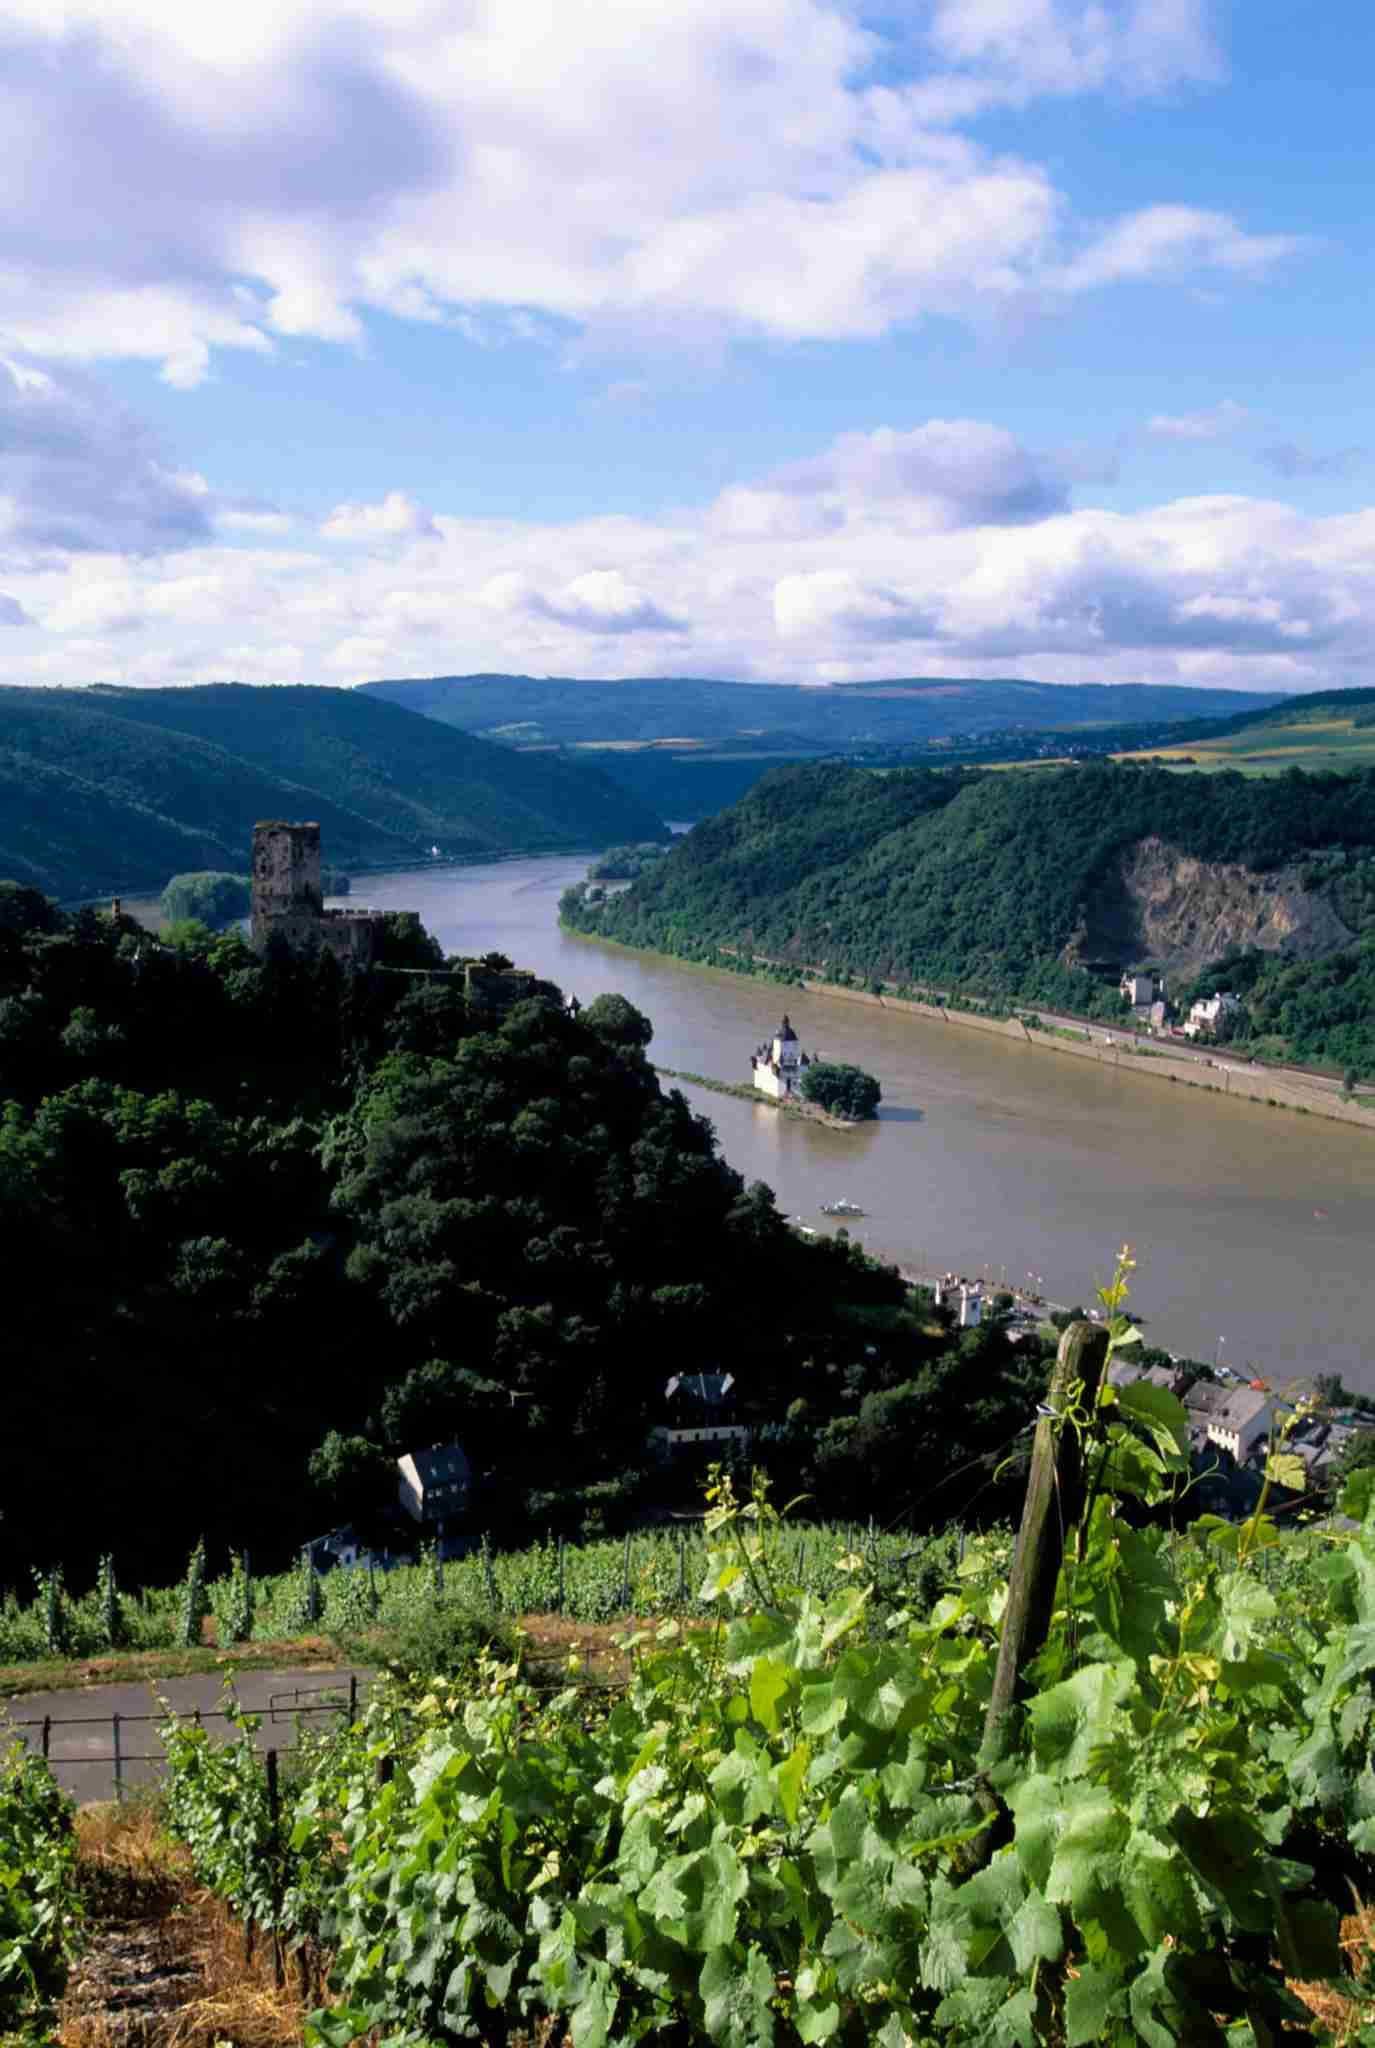 GERMANY - 1997/01/01: Germany, Rhine River, Pfalzgrafenstein Castle On Island And Gutenfels Castle, Vineyards. (Photo by Wolfgang Kaehler/LightRocket via Getty Images)